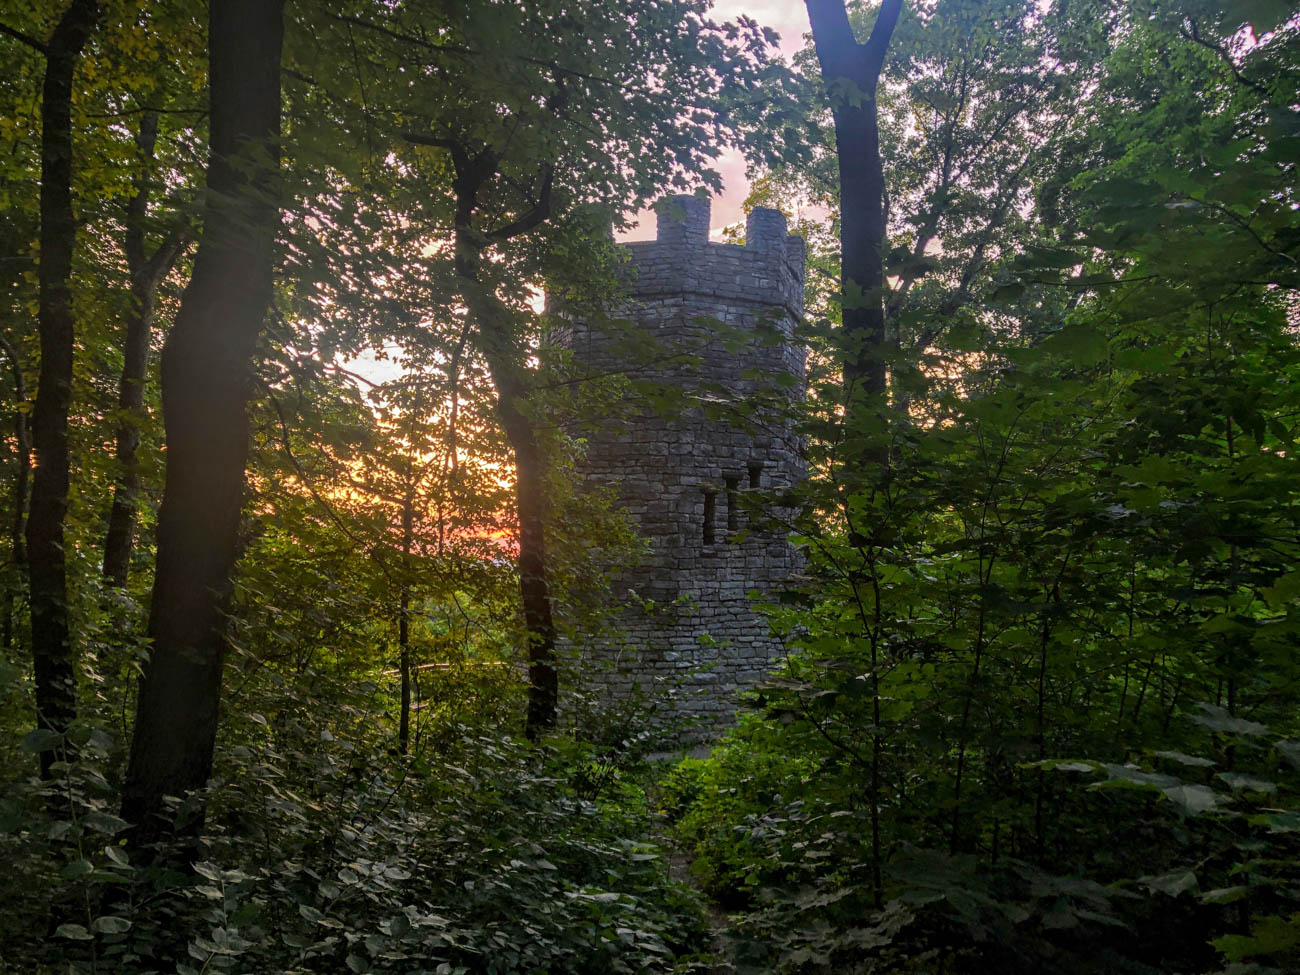 PLACE: Patterson Tower in Hills and Dales MetroPark / ADDRESS: 2655 S Patterson Boulevard (Kettering) / If you head about an hour north of Cincinnati near Dayton, you'll find the Patterson Tower platform in the Hills and Dales Metropark. In 1967, a teenager named Peggy Harmeson was killed on the tower's metal stairs when it was struck by lightning. Legend has it that during storms, her ghost can still be seen today. Today, the tower door is cemented shut and all the windows are barred. Peeking through the windows does provoke some heebie-jeebies, resulting in a 3/10 on our Spookiness Scale. / Image: Di Minardi // Published: 7.23.19